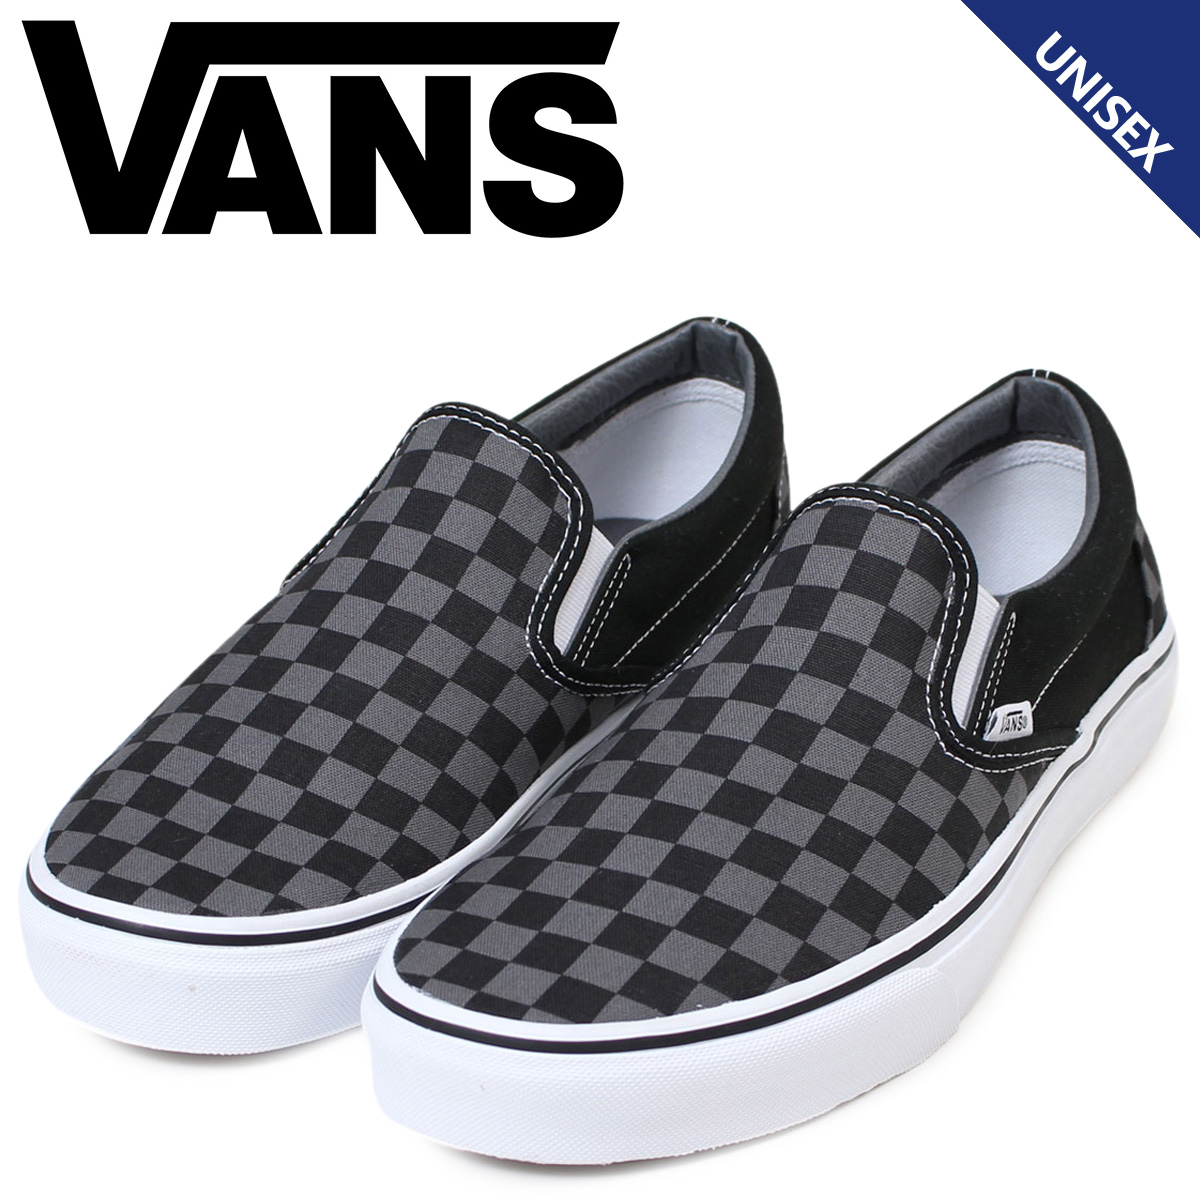 4e60c42d86f204 Sugar Online Shop  Vans slip-ons VANS sneakers men gap Dis station wagons  SLIP ON VN000EYEBPJ shoes black